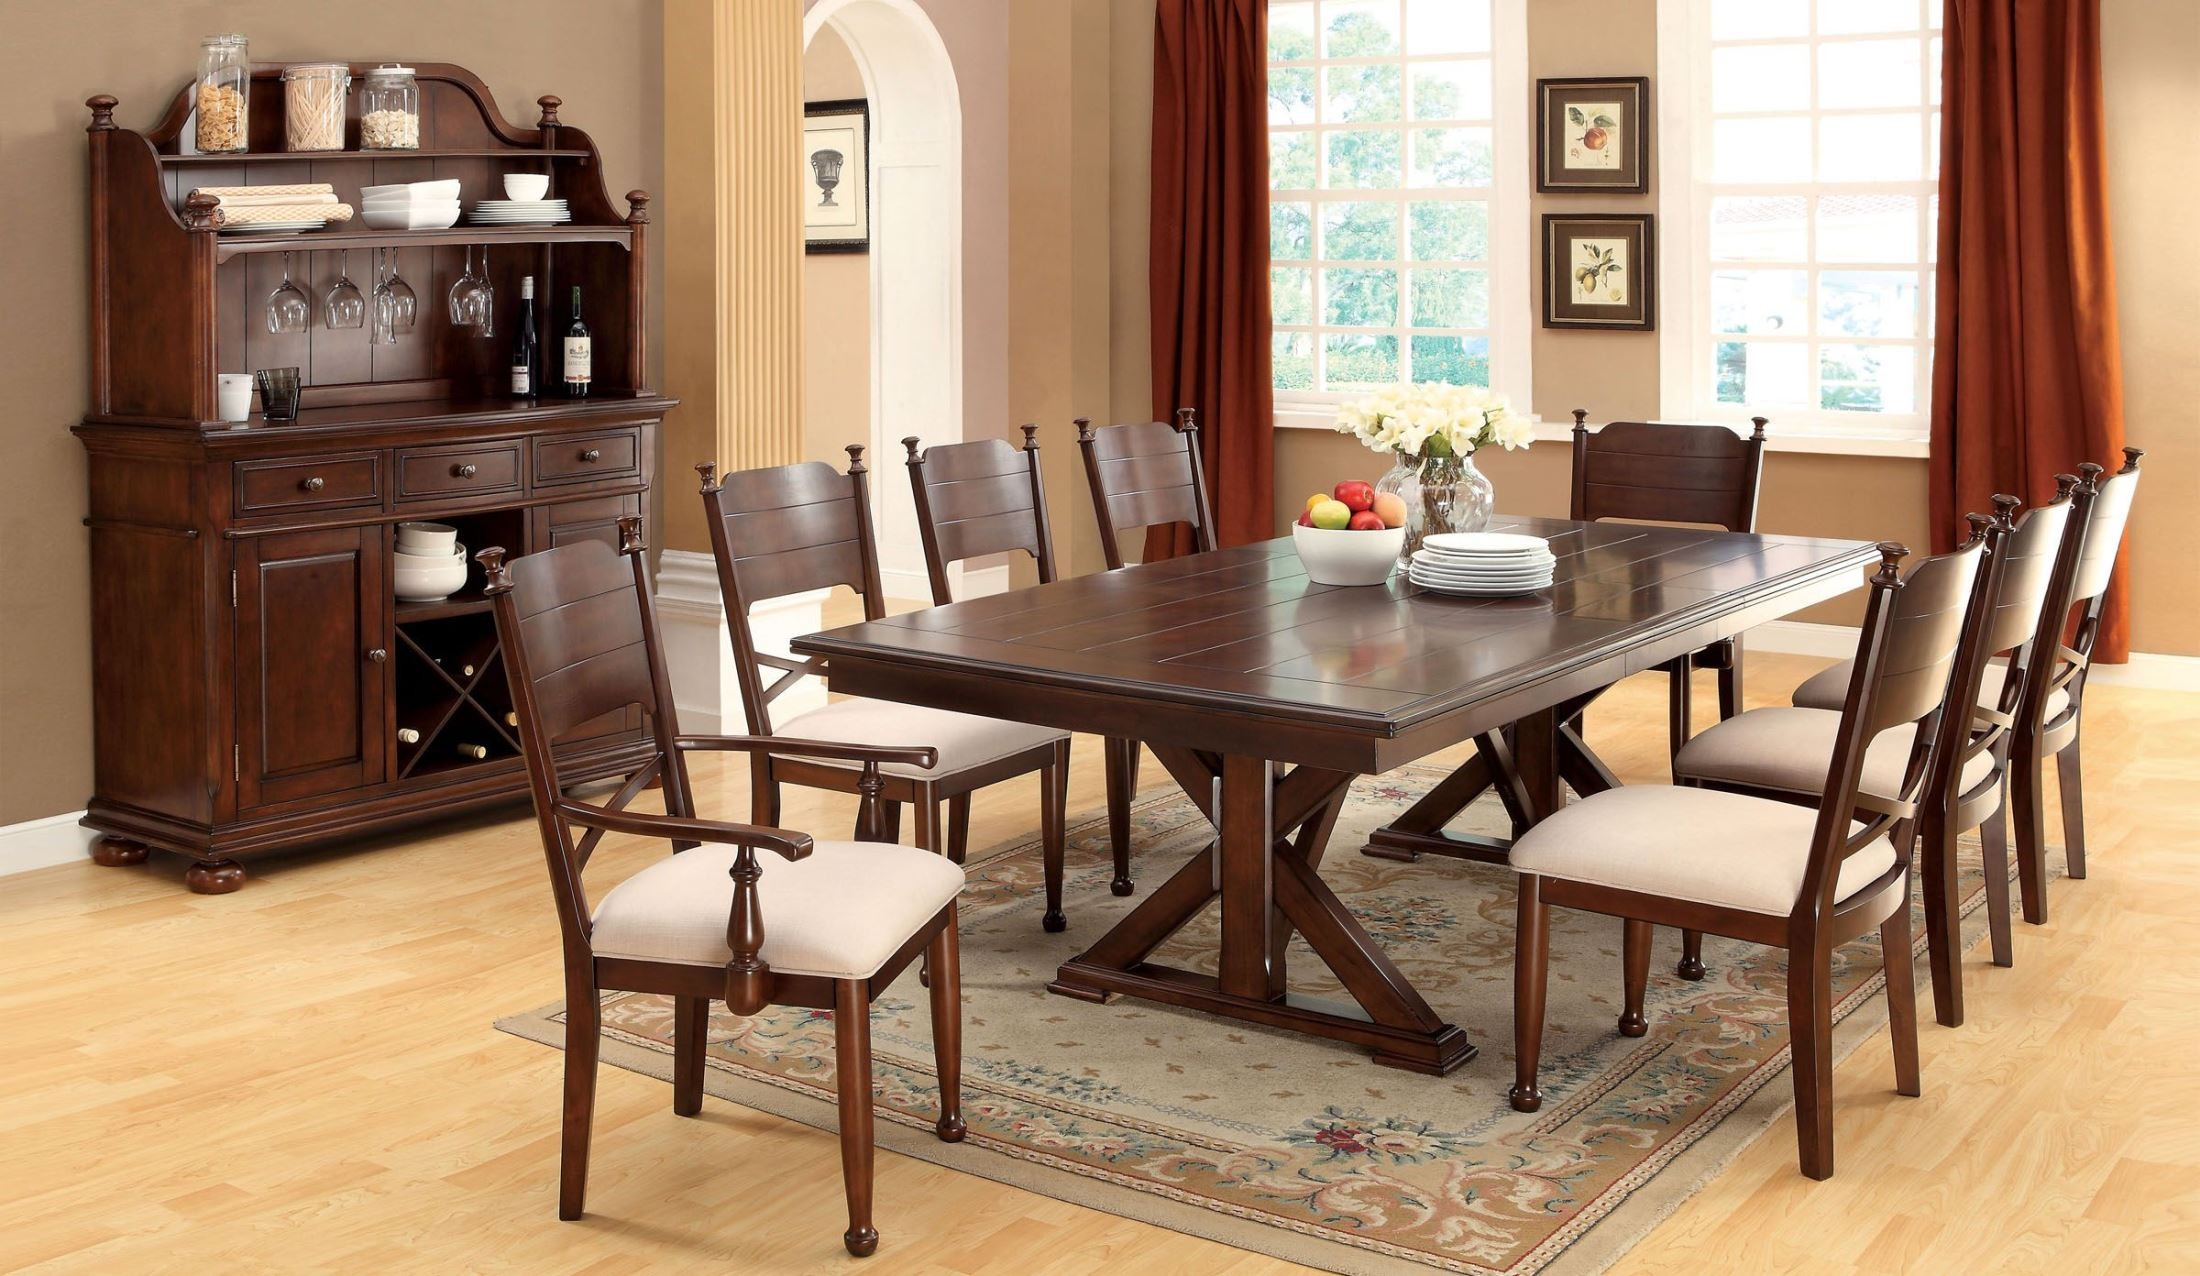 Descanso Brown Cherry Rectangular Extendable Trestle Dining Room Set From Fur